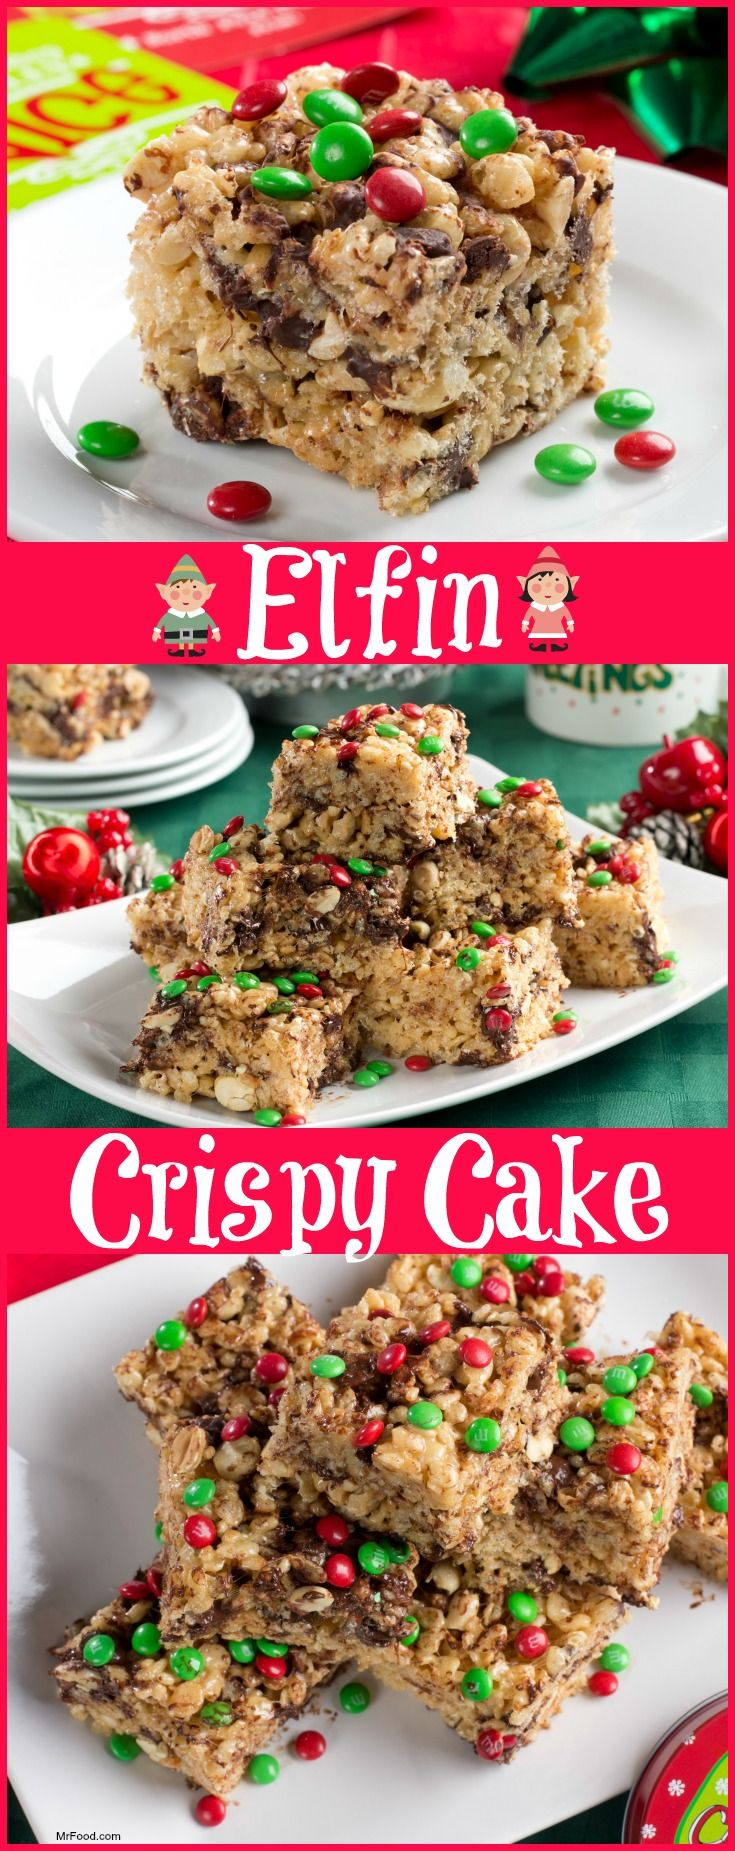 This is a great last-minute treat to make with the kids on Christmas Day.